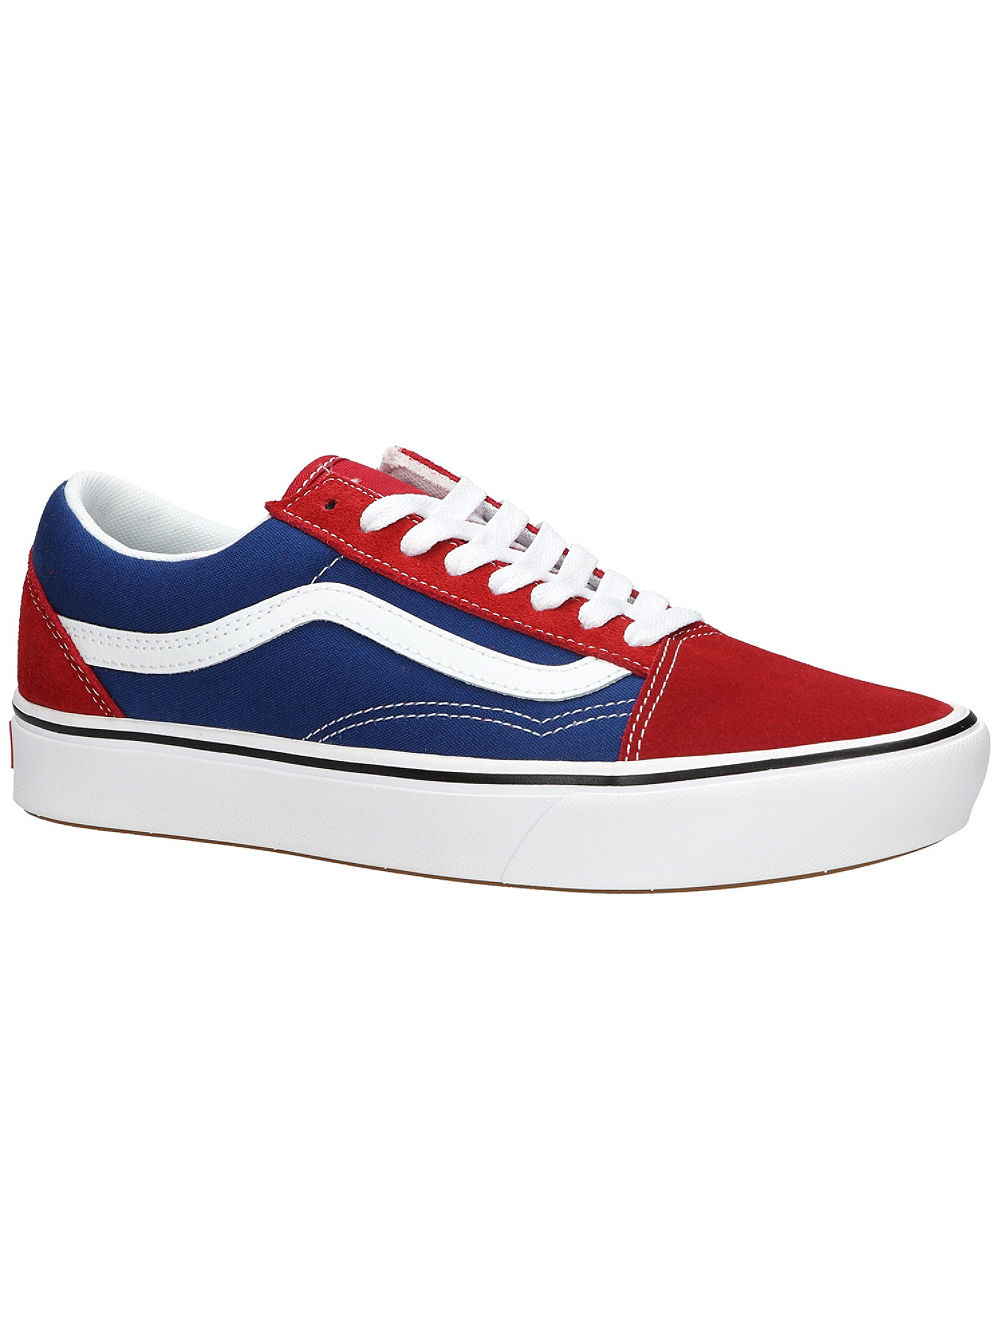 ComfyCush Old Skool Two-Tone Sneakers